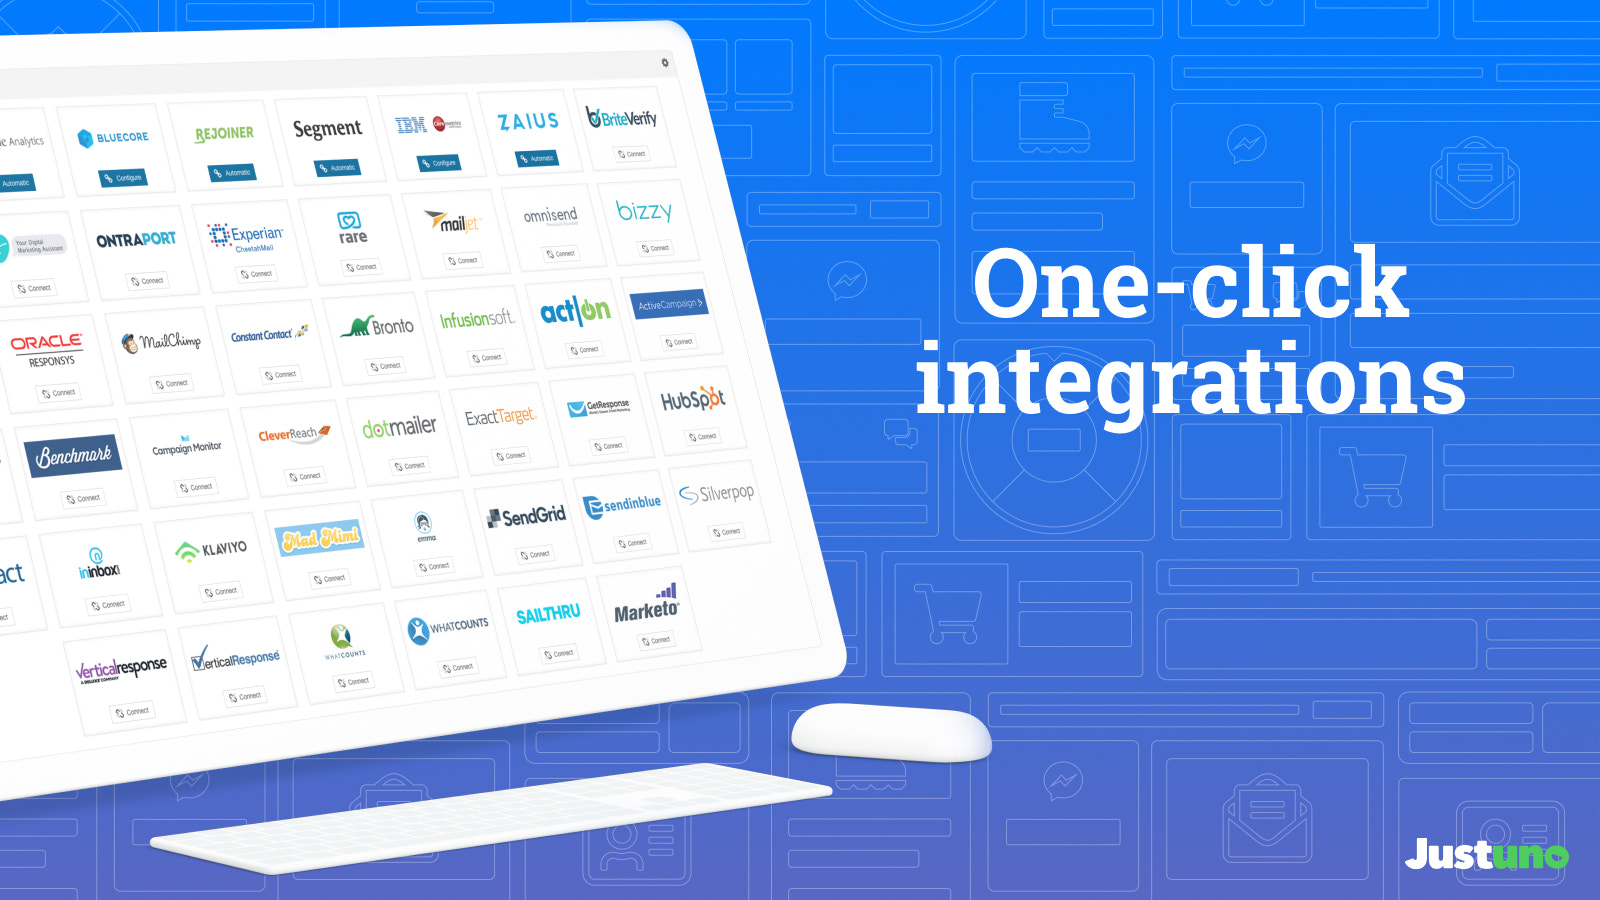 One-click integrations make it easy to get started with Justuno